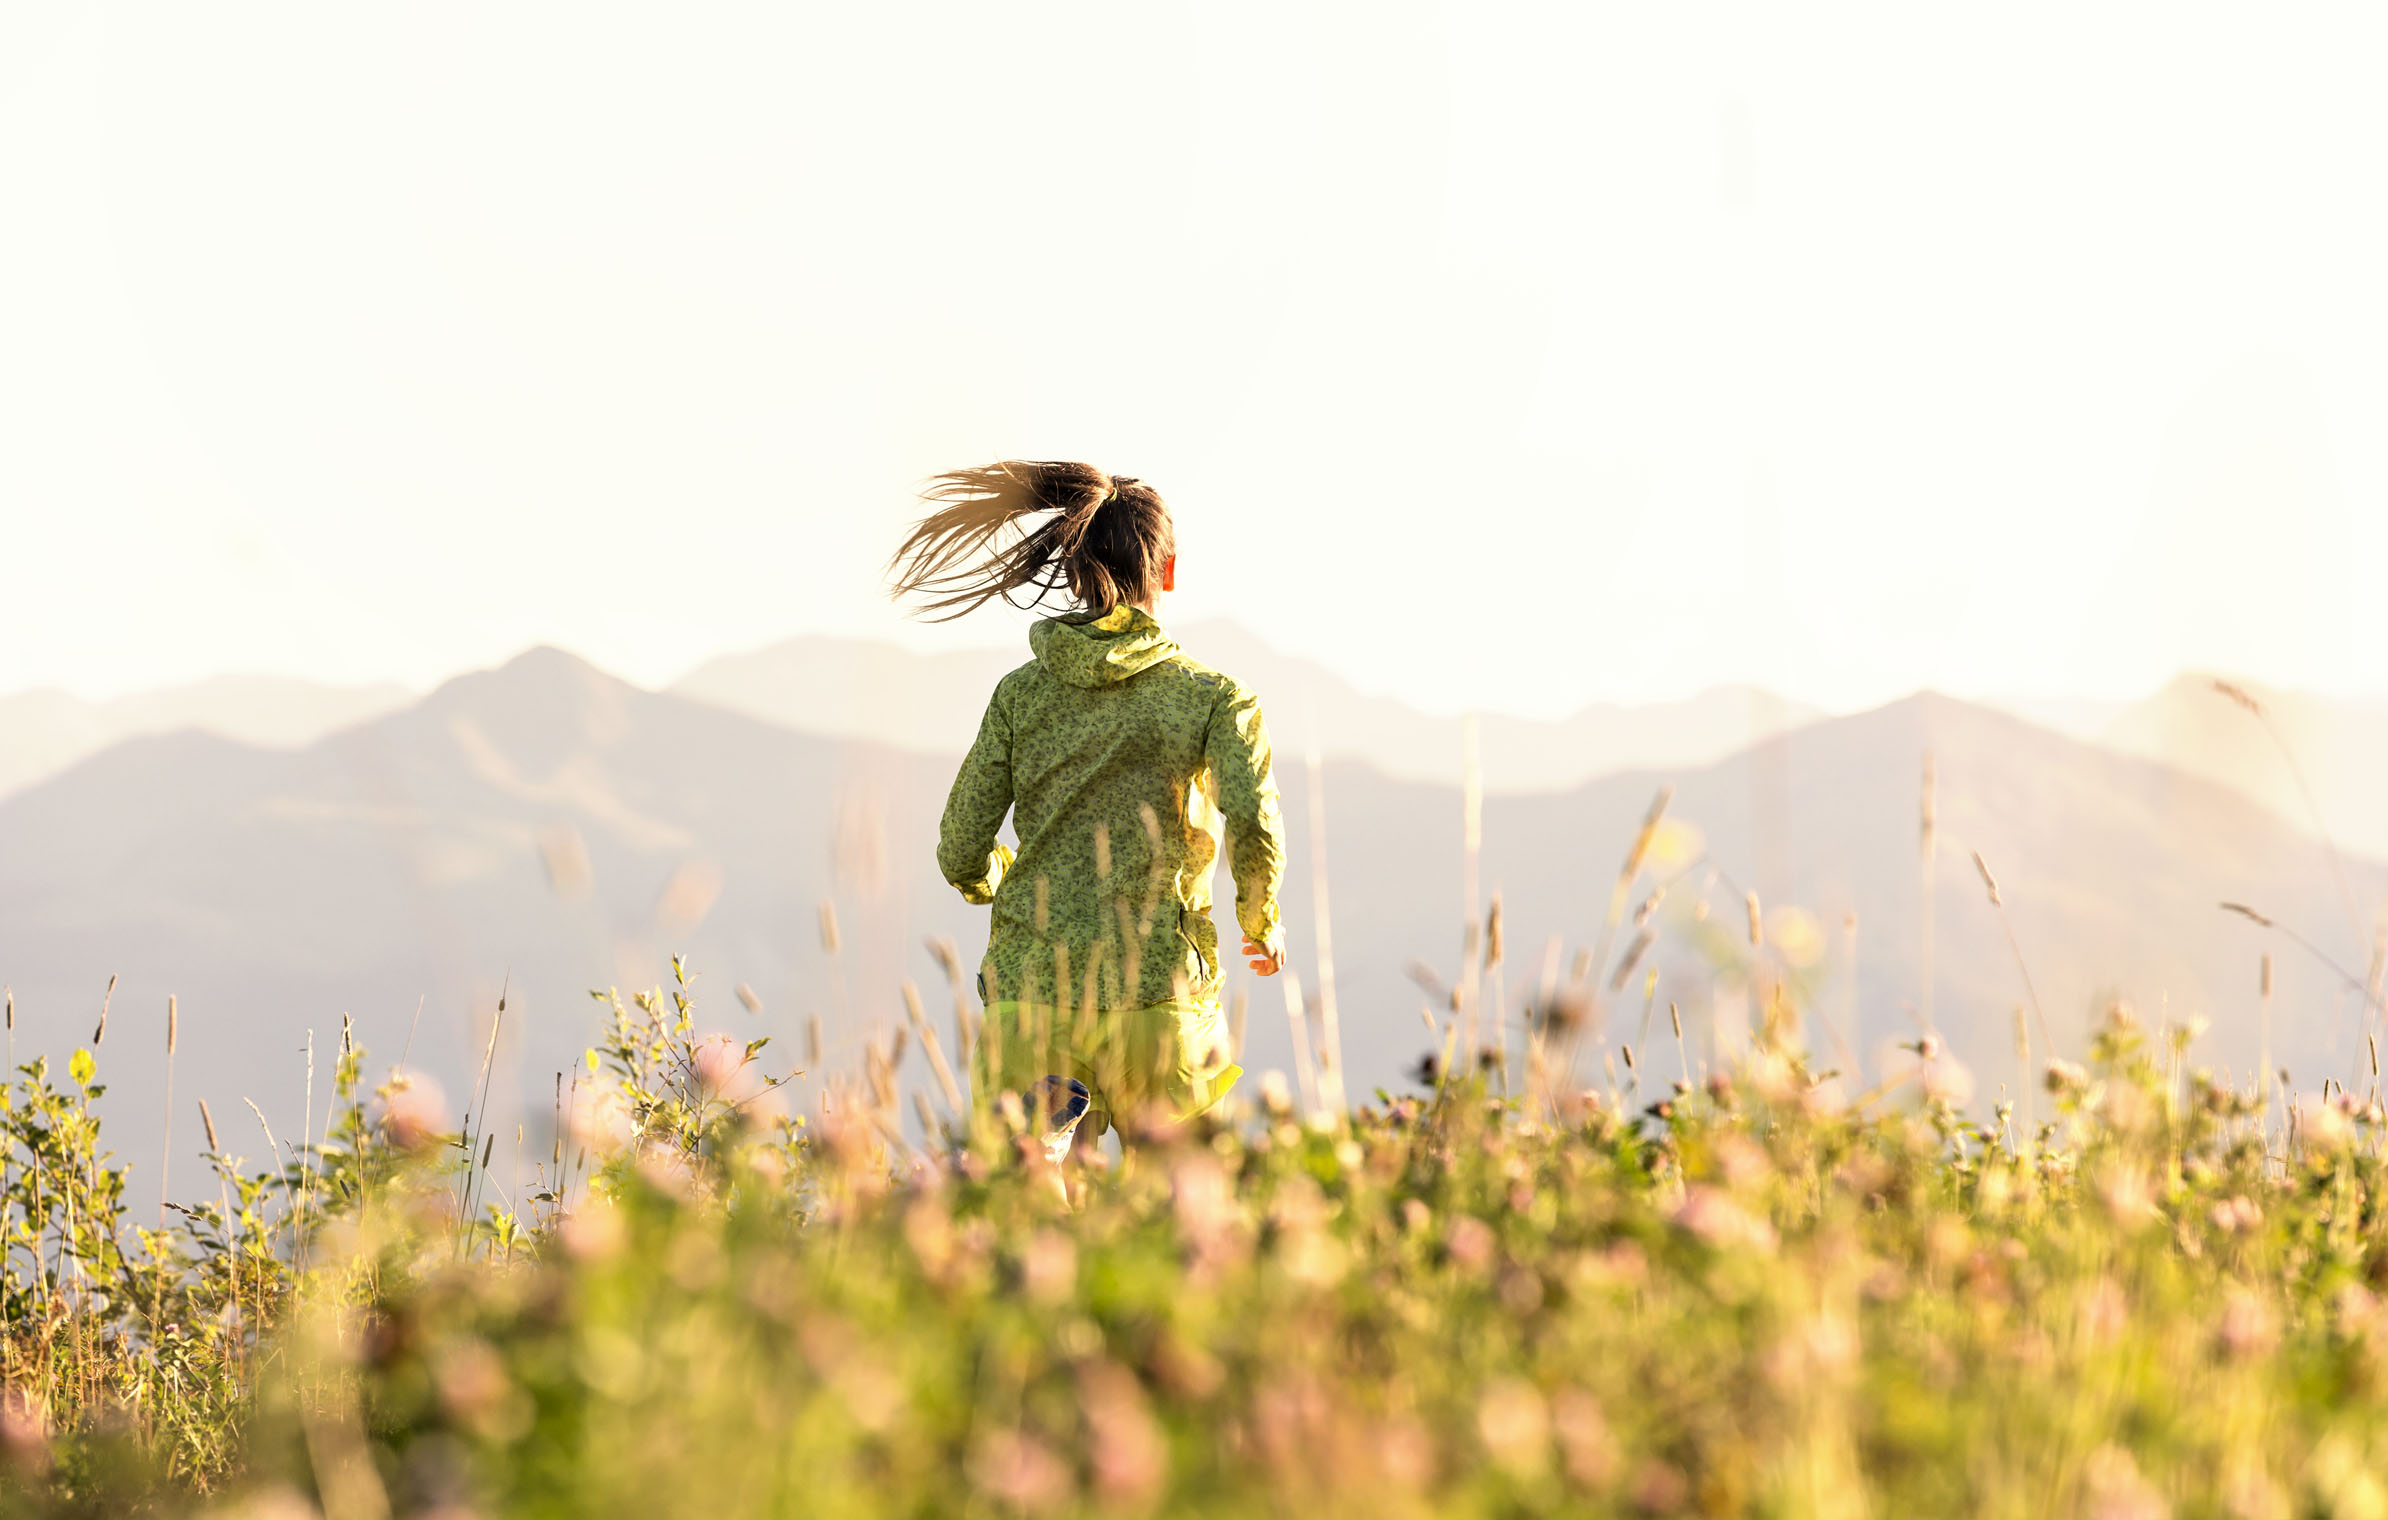 Sporthotel_HoheSalve_running_mountains_tyrol_sunset_flowers Kopie